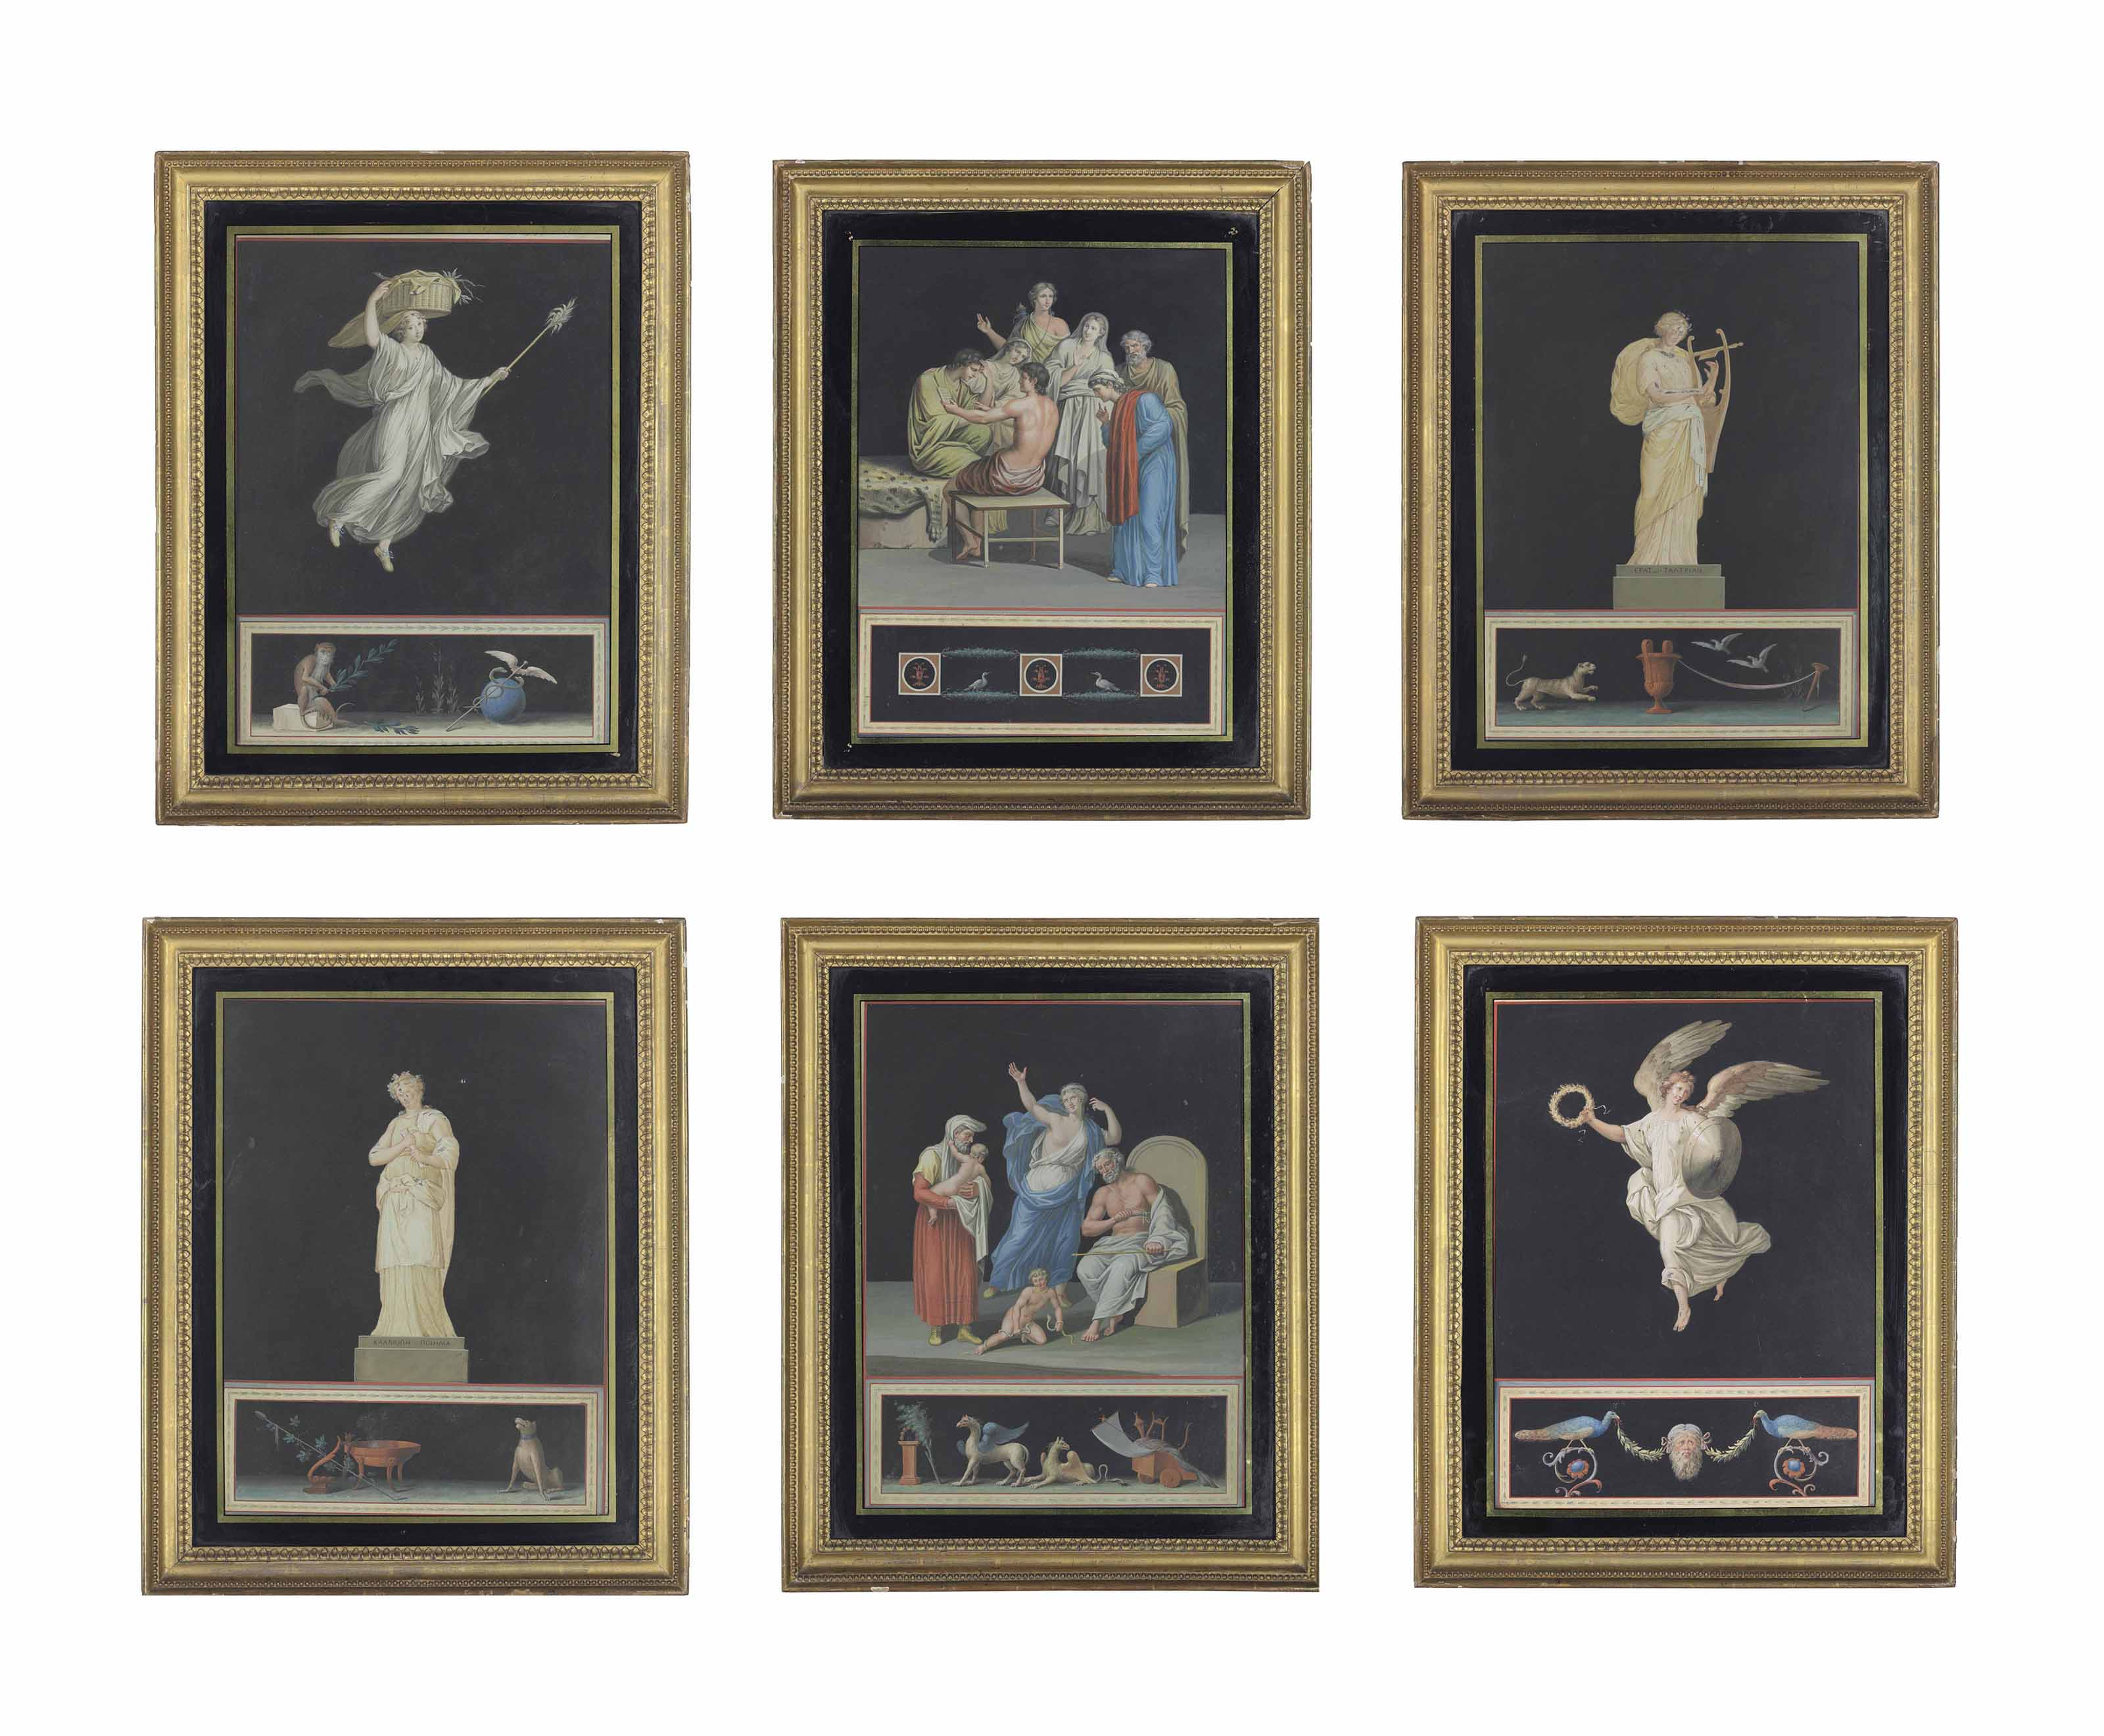 Six Classical and Allegorical scenes including studies of the Muses